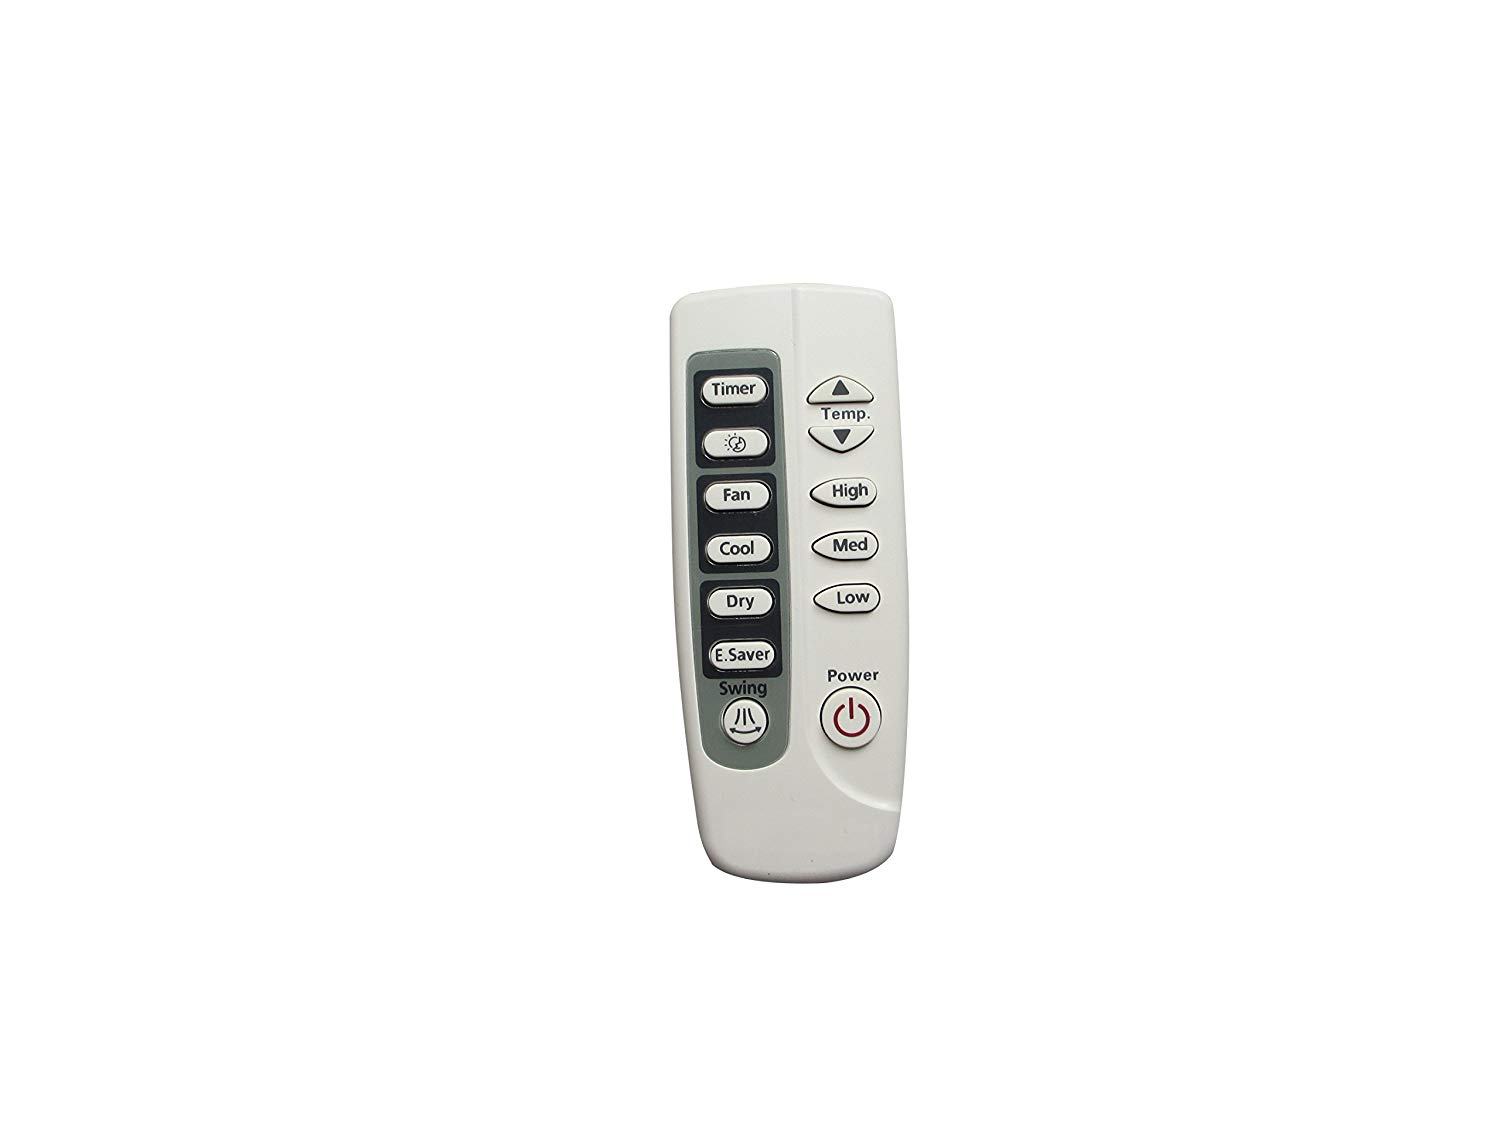 Replaced Air Conditioner Remote Control Compatible for Samsung ARH445 AS09A6MAF AS18FBAN AW07FBNAA AS12FAN AW08FBNAB AW09FBNAA